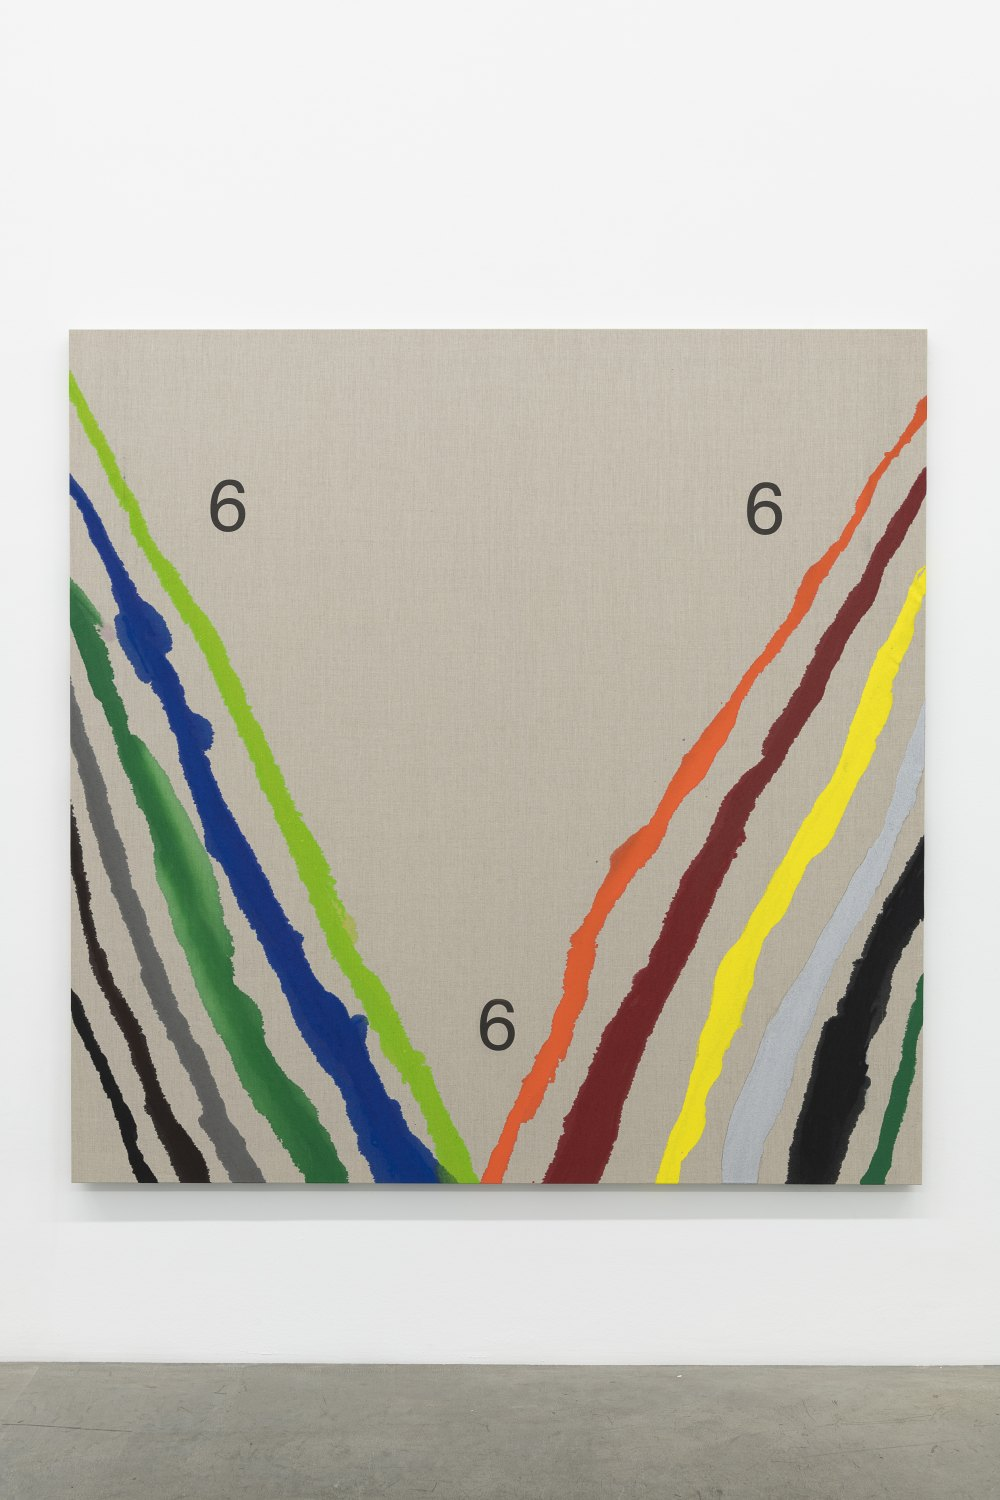 Karl Holmqvist Untitled (6,6 and 6 Pouredpainting), 2021 High flow acrylics on raw canvas 183 x 183 cm